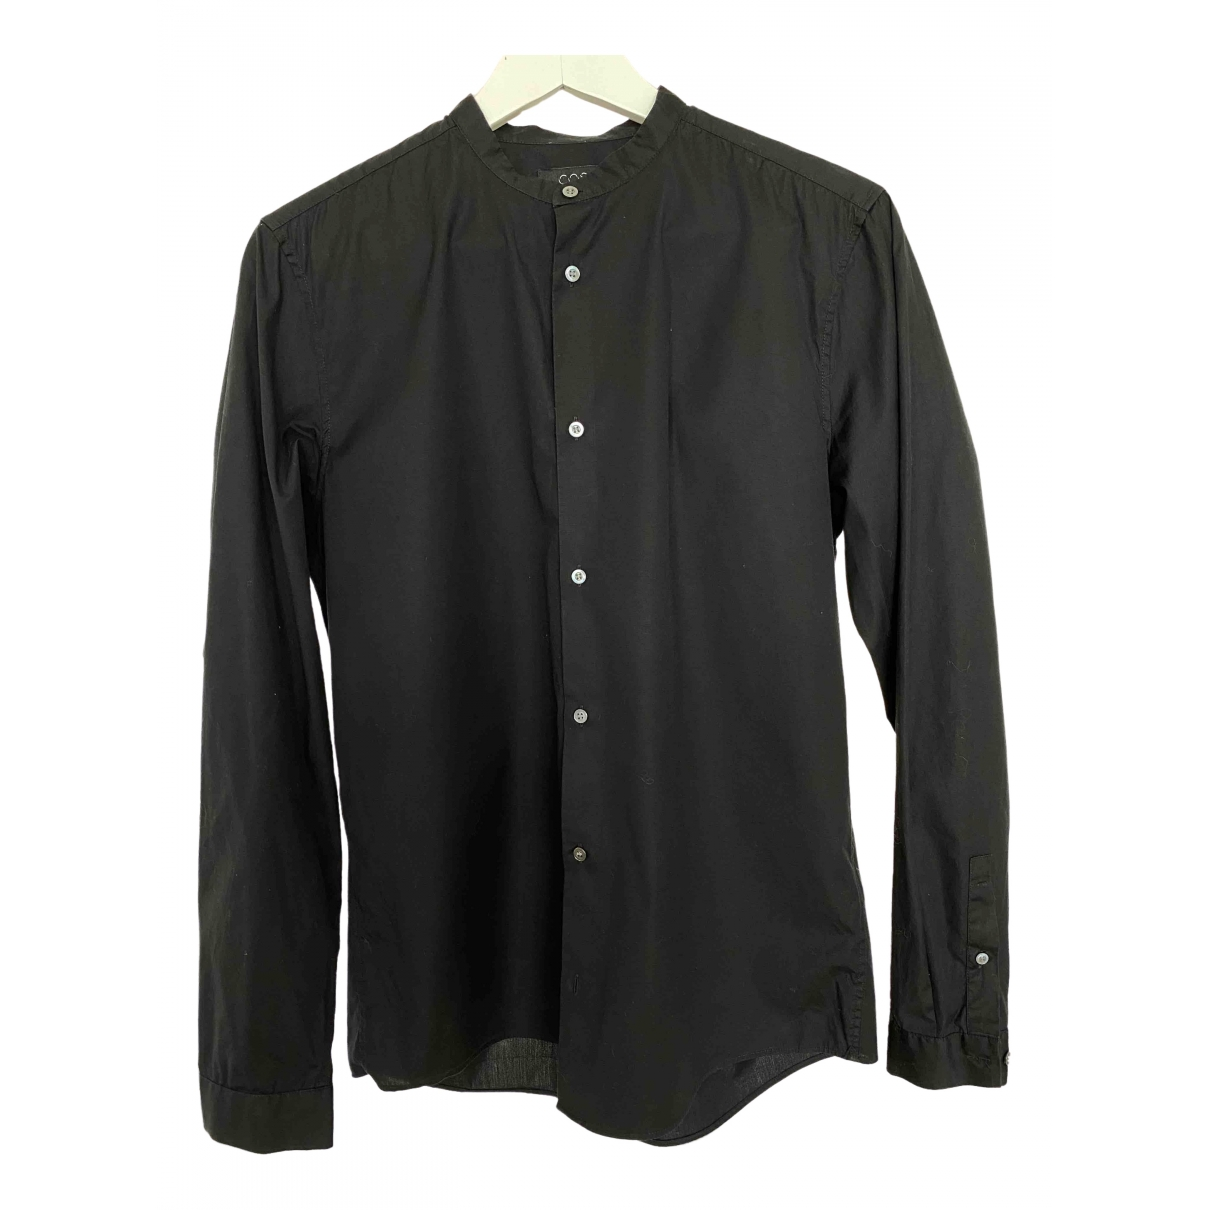 Cos \N Black Cotton Shirts for Men S International